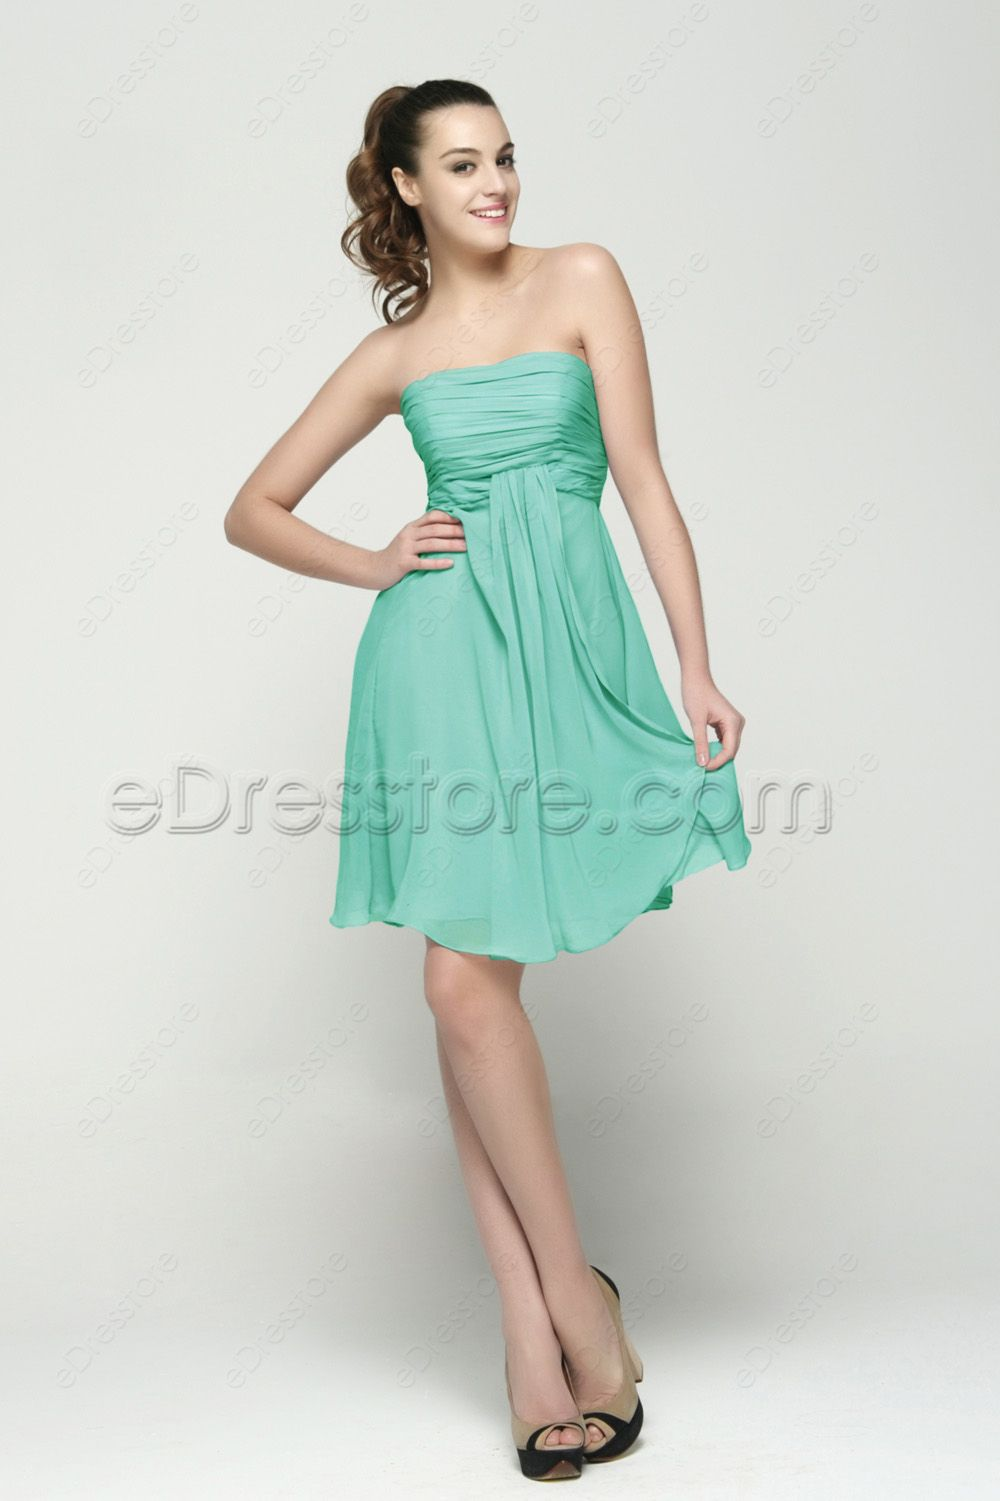 Strapless Mint Green Bridesmaid Dresses Knee Length | Mint green ...